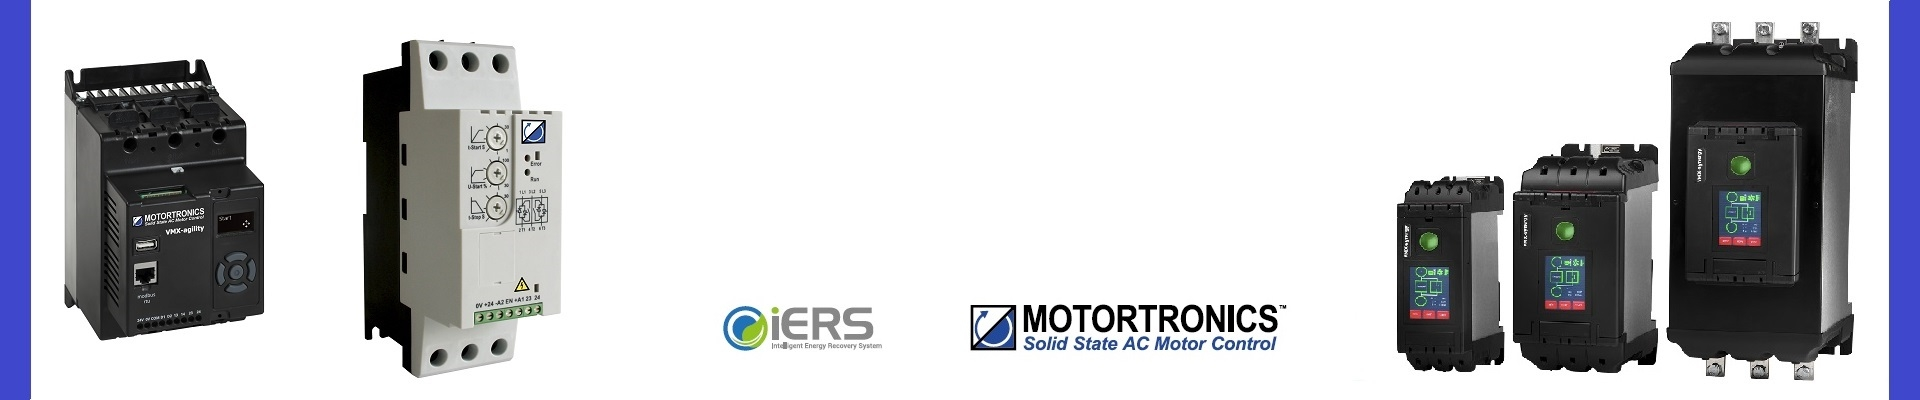 Motortronics Softstarters